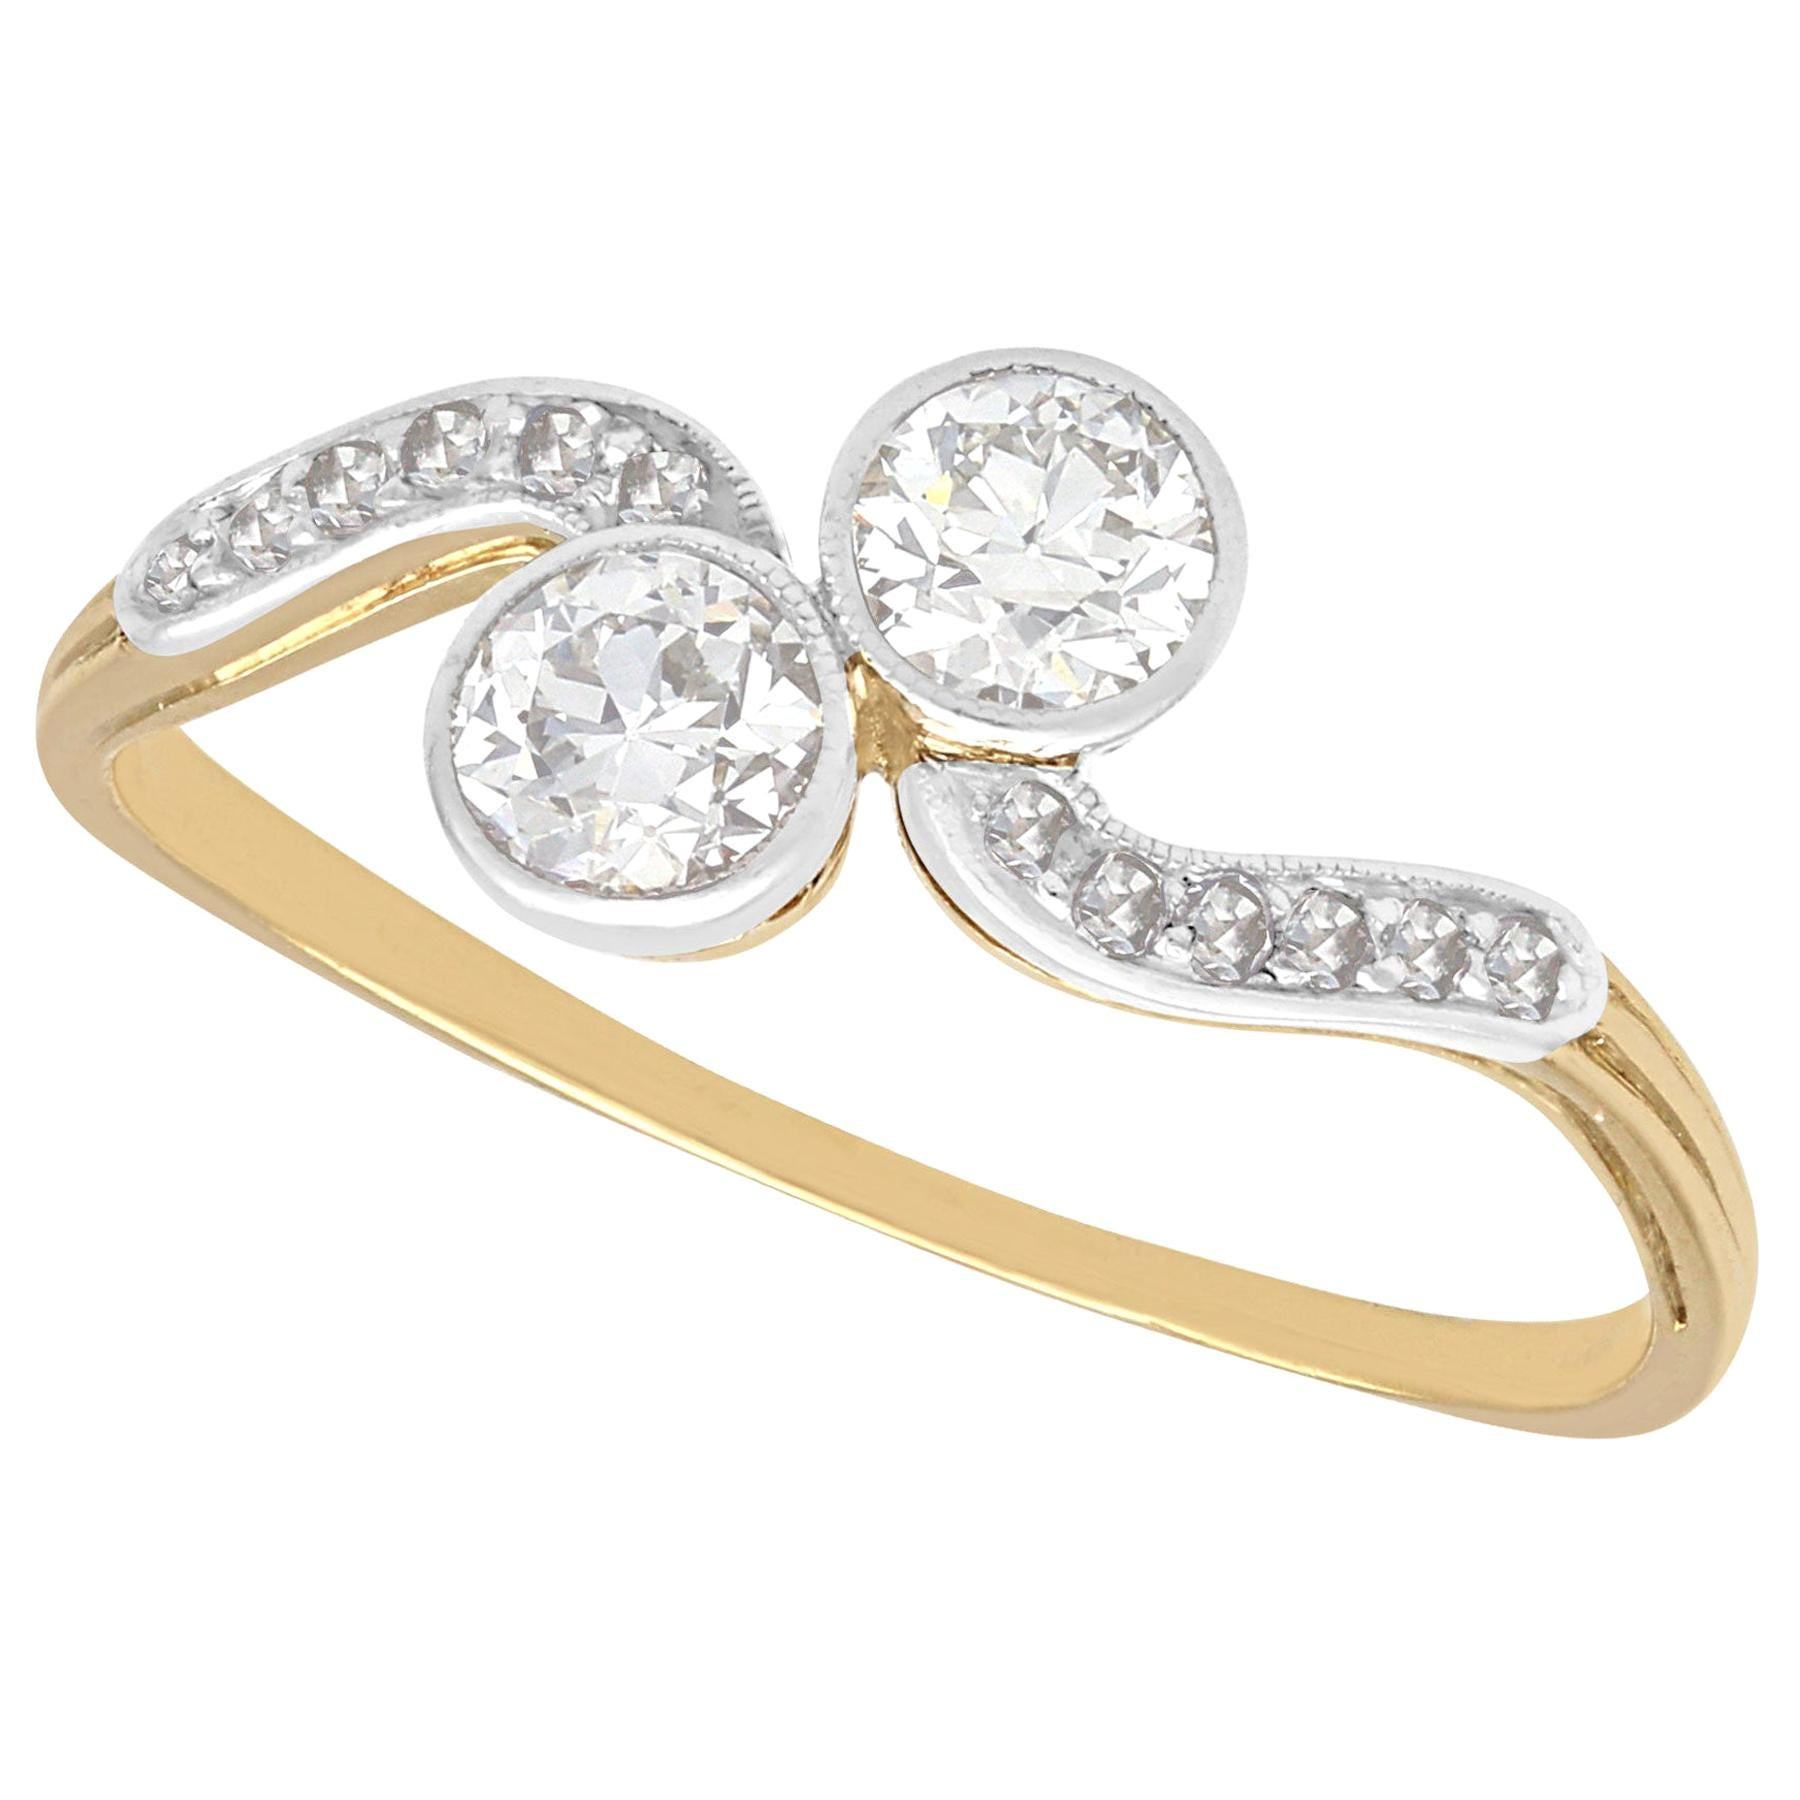 Antique Diamond and Yellow Gold Twist Engagement Ring